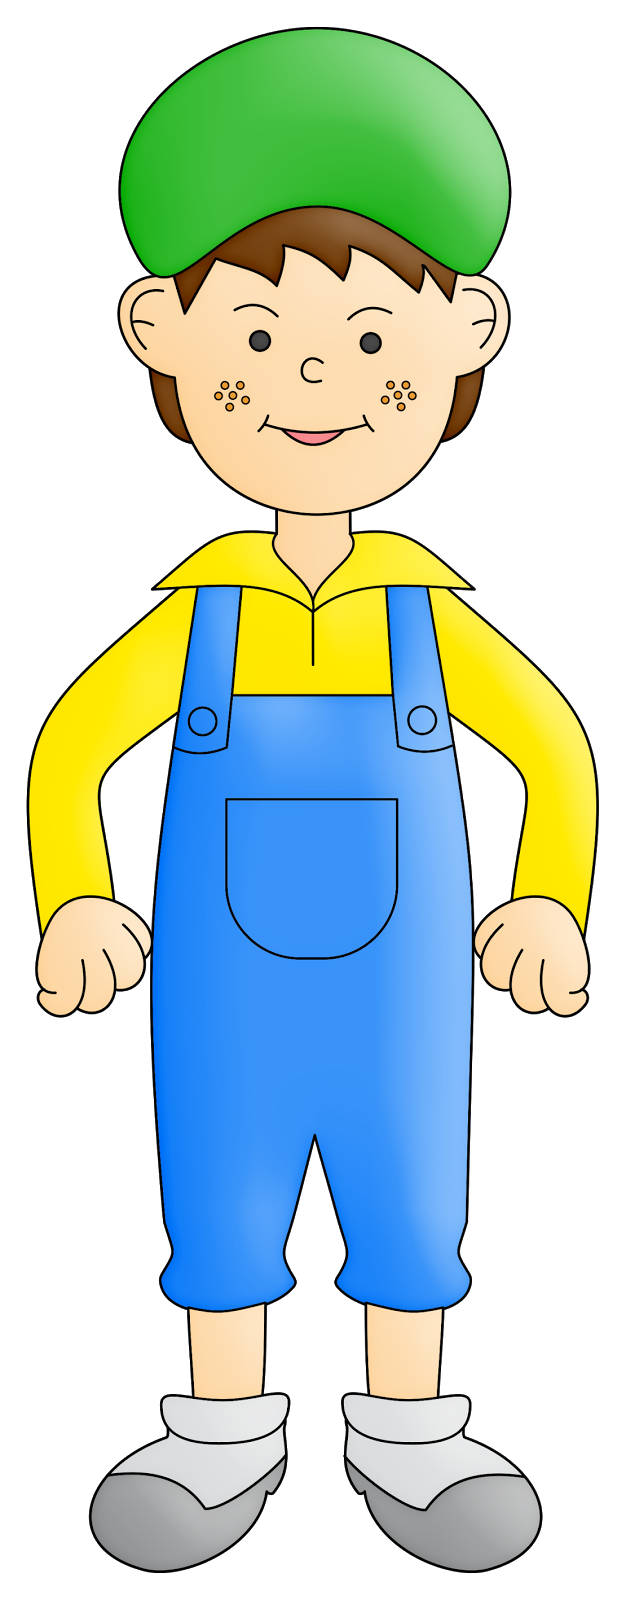 Chavo del oh my. Teen clipart standing